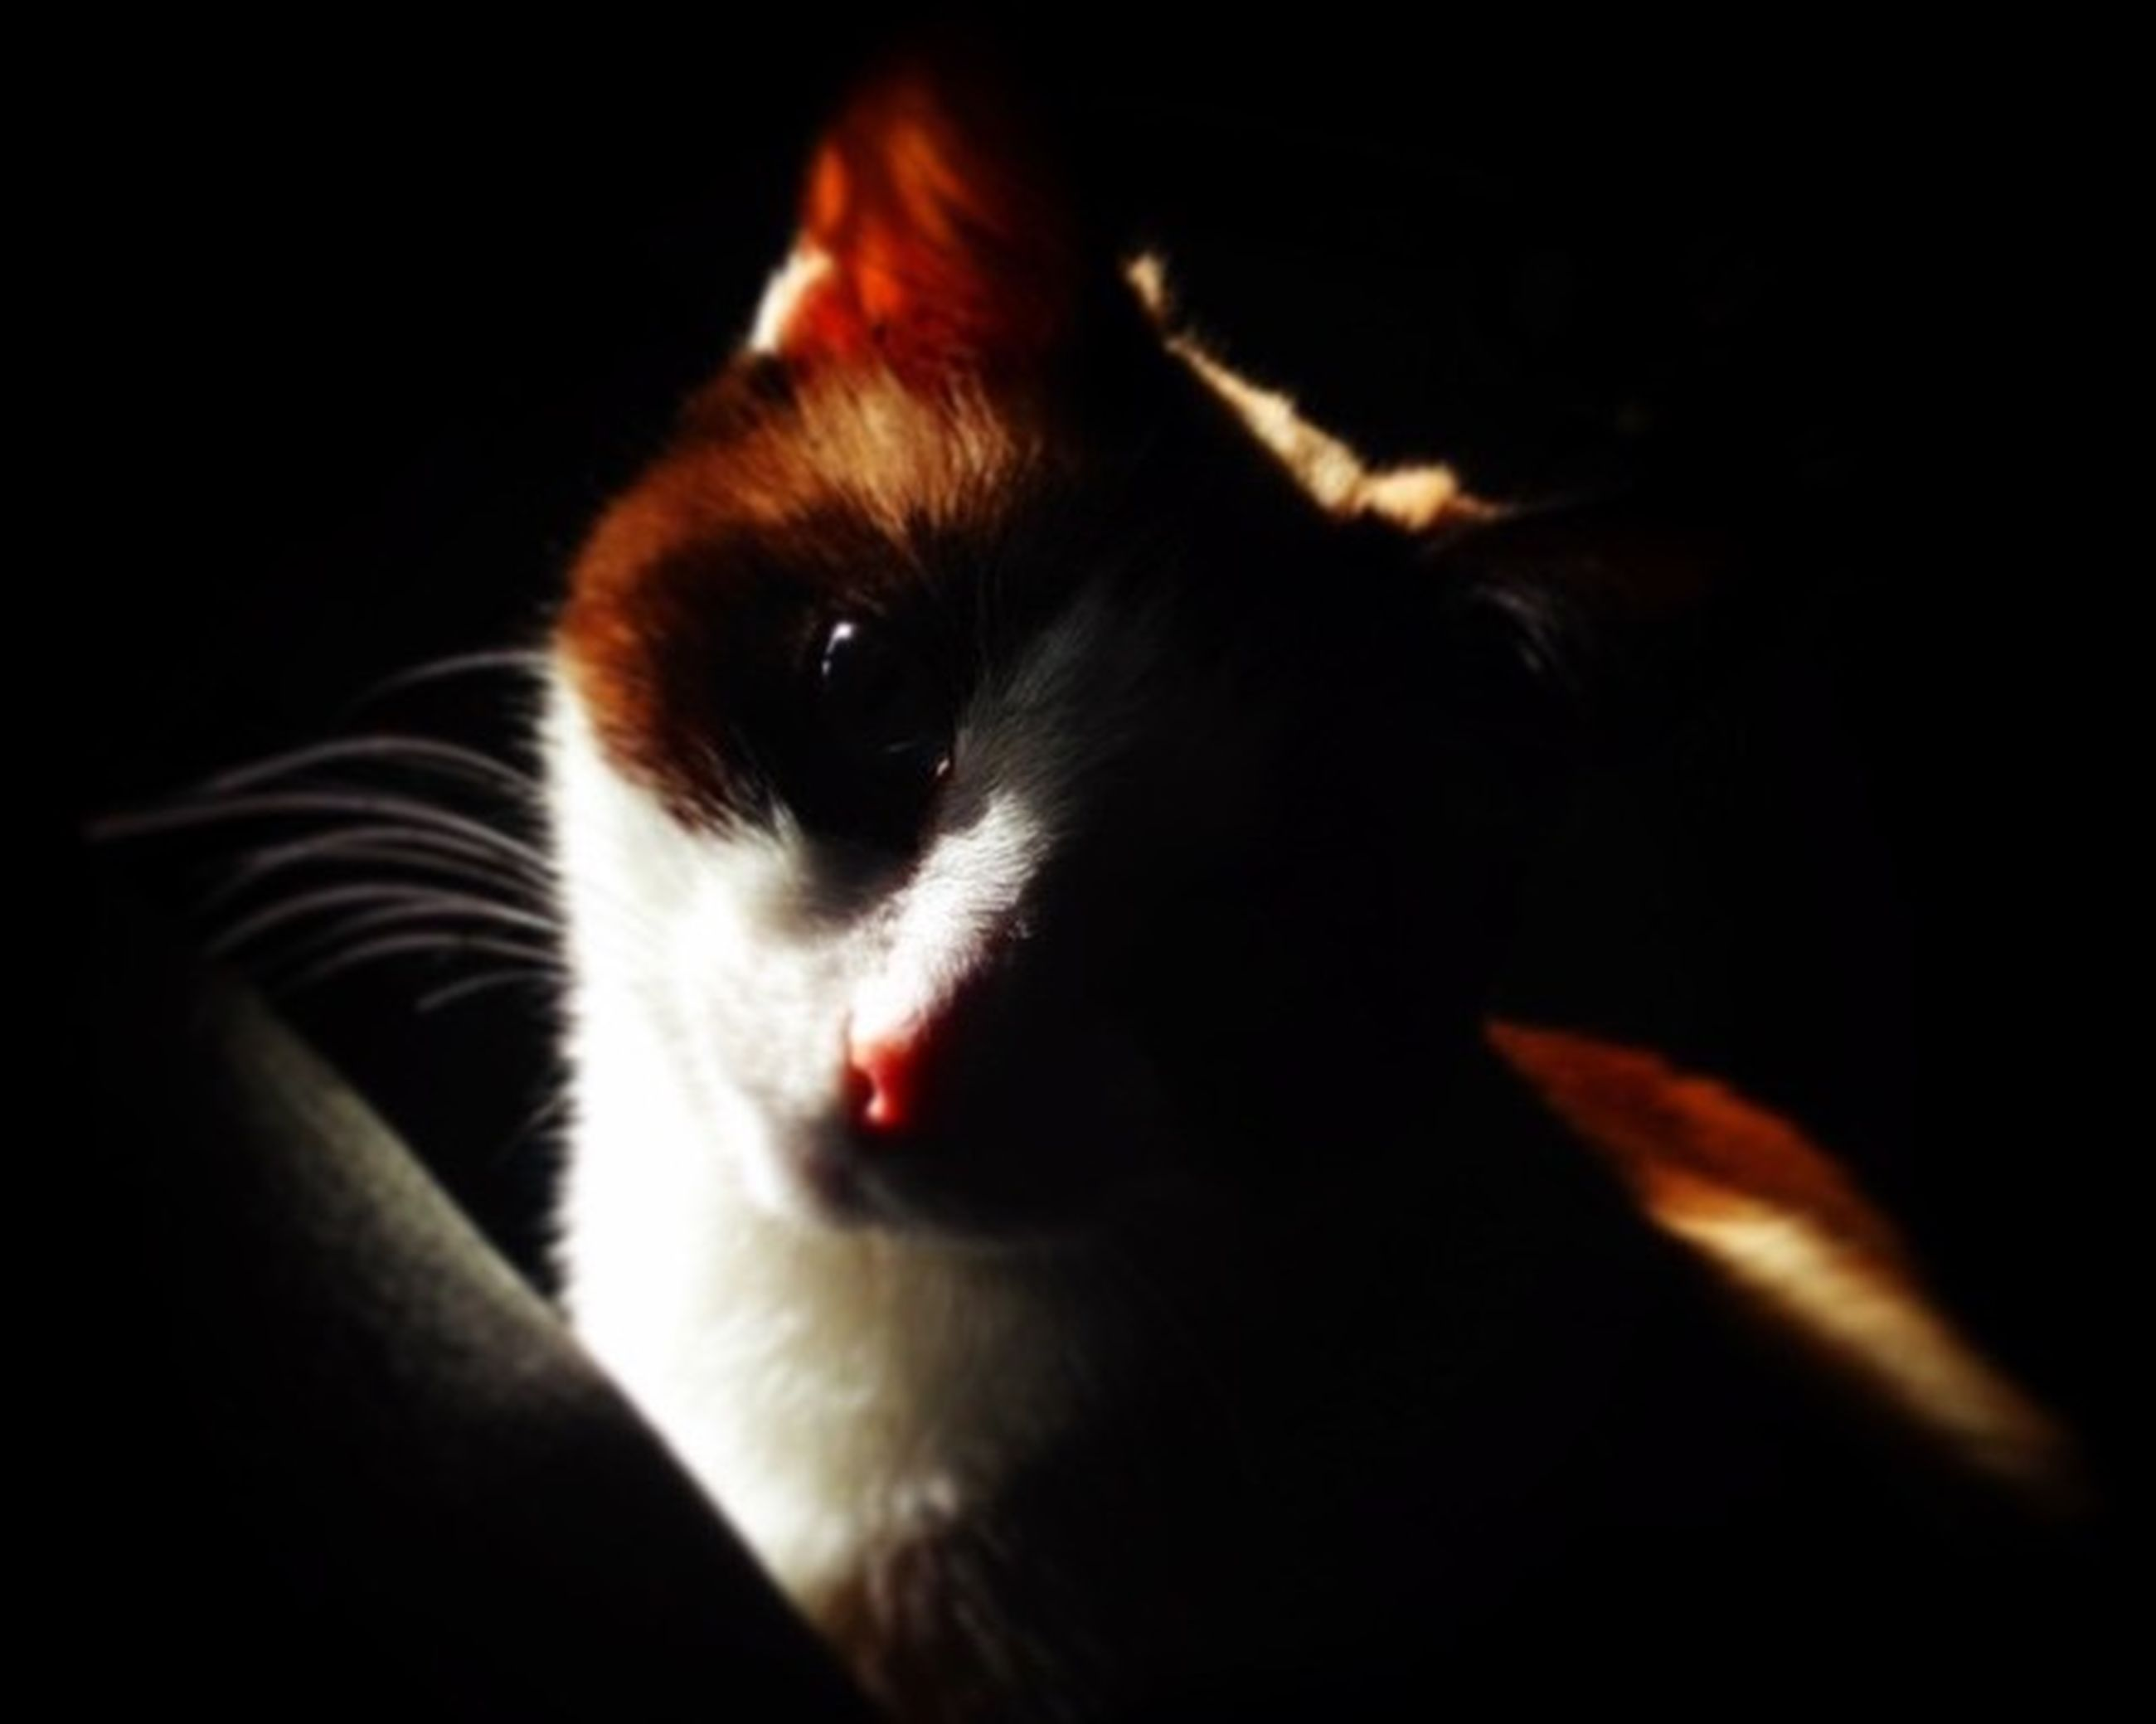 pets, domestic animals, one animal, animal themes, indoors, mammal, dog, close-up, animal head, domestic cat, looking at camera, portrait, black background, animal body part, home interior, whisker, cat, animal eye, feline